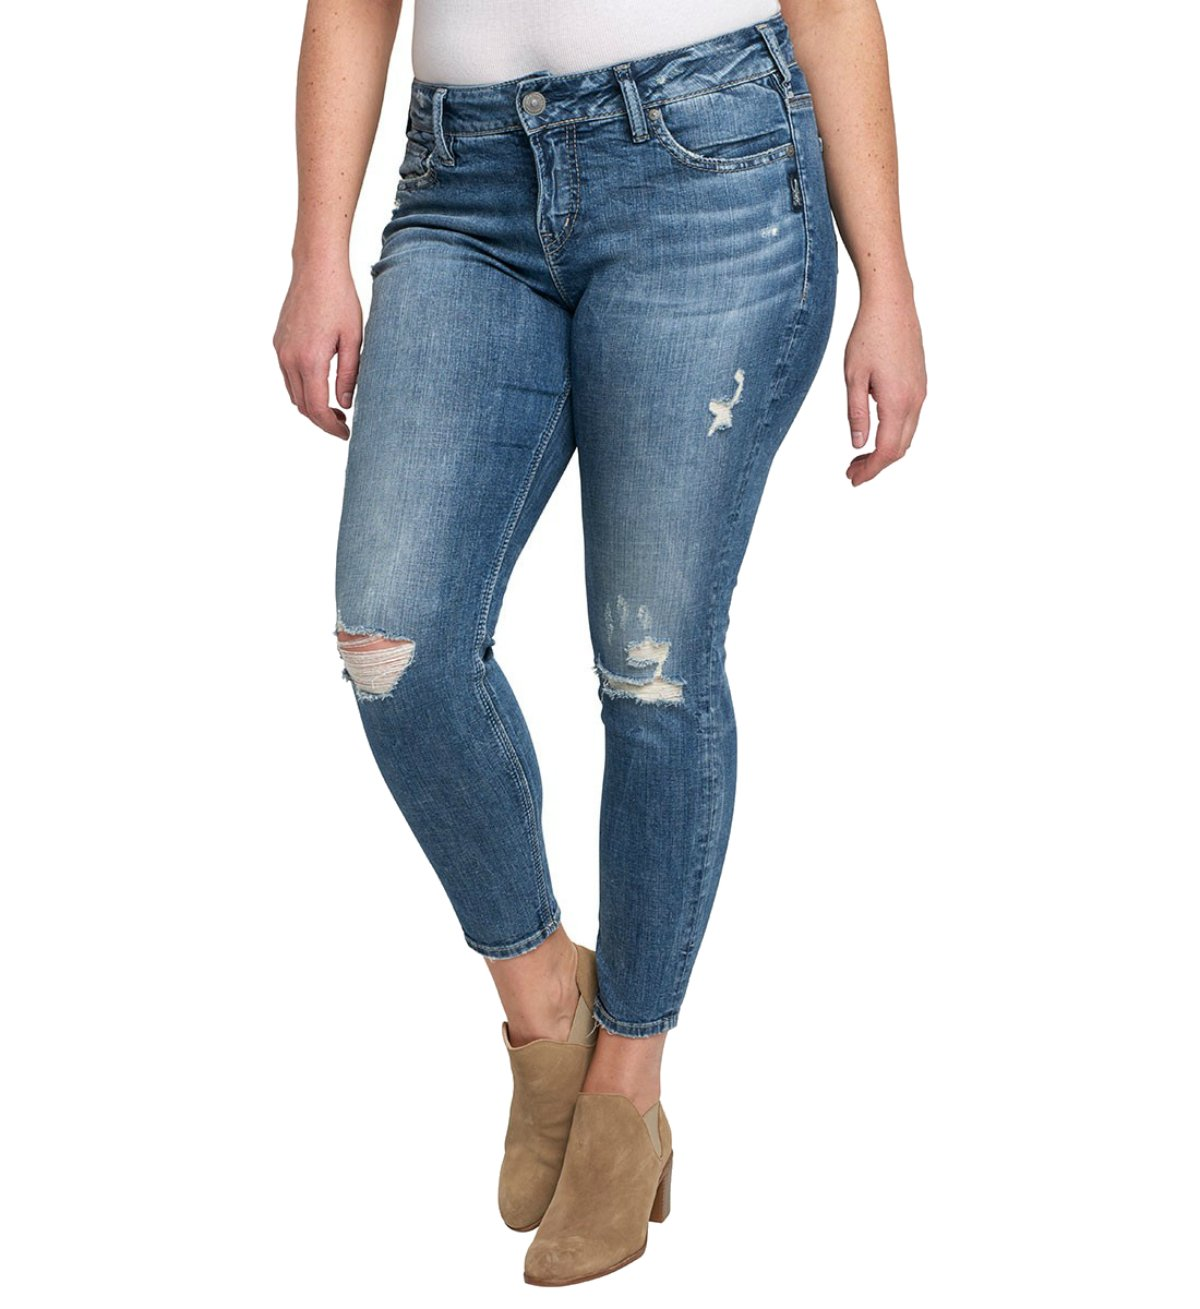 Silver Jeans Women's Plus Size Suki Mid-Rise Ankle Skinny Jeans, Destructed Medium Light Wash, 16X27